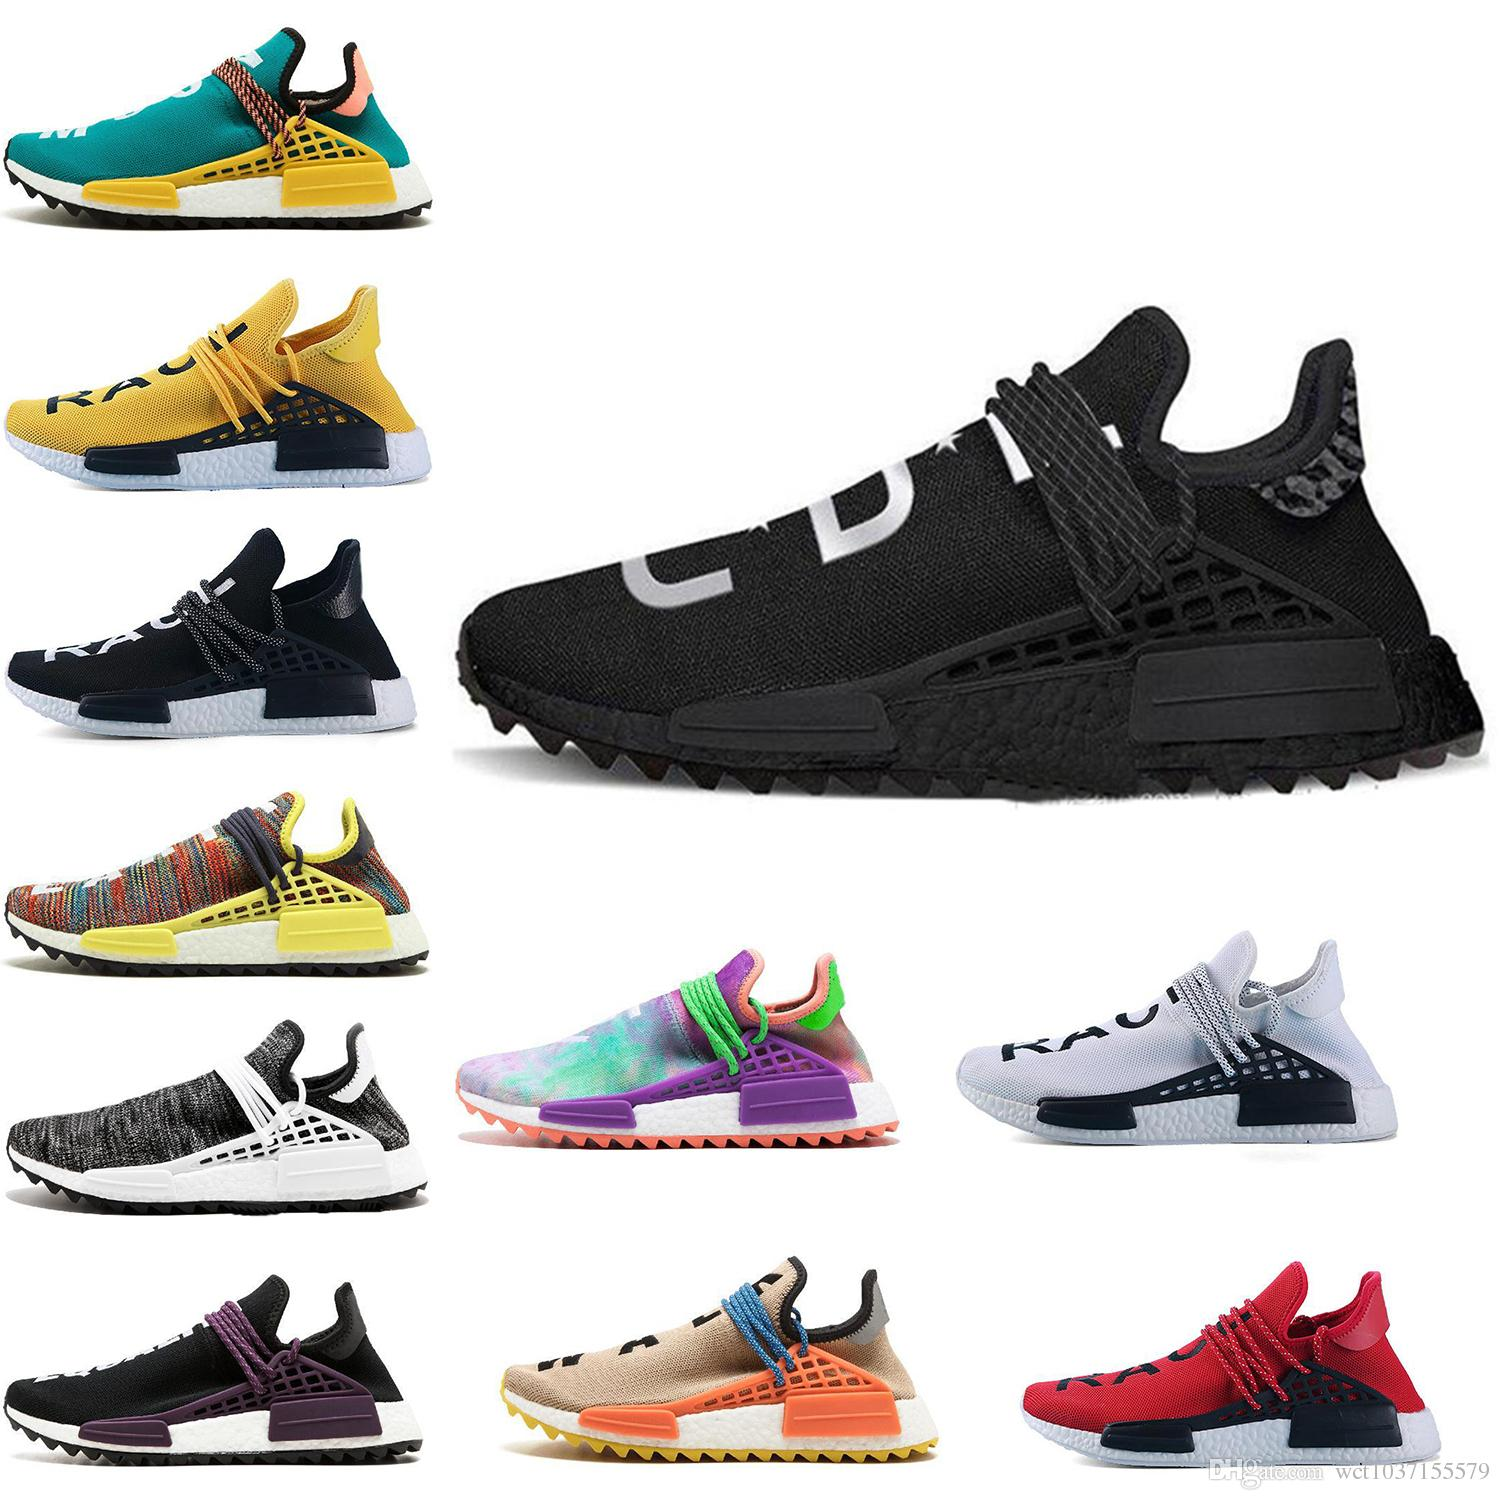 52d7efecf8e3c 2018 New Human Race NMD Pharrell Williams For Women Men Designer Trainers  Sneakers Nmds RUNNER Running Shoes 36 45 Men Running Shoes Best Running  Shoes From ...